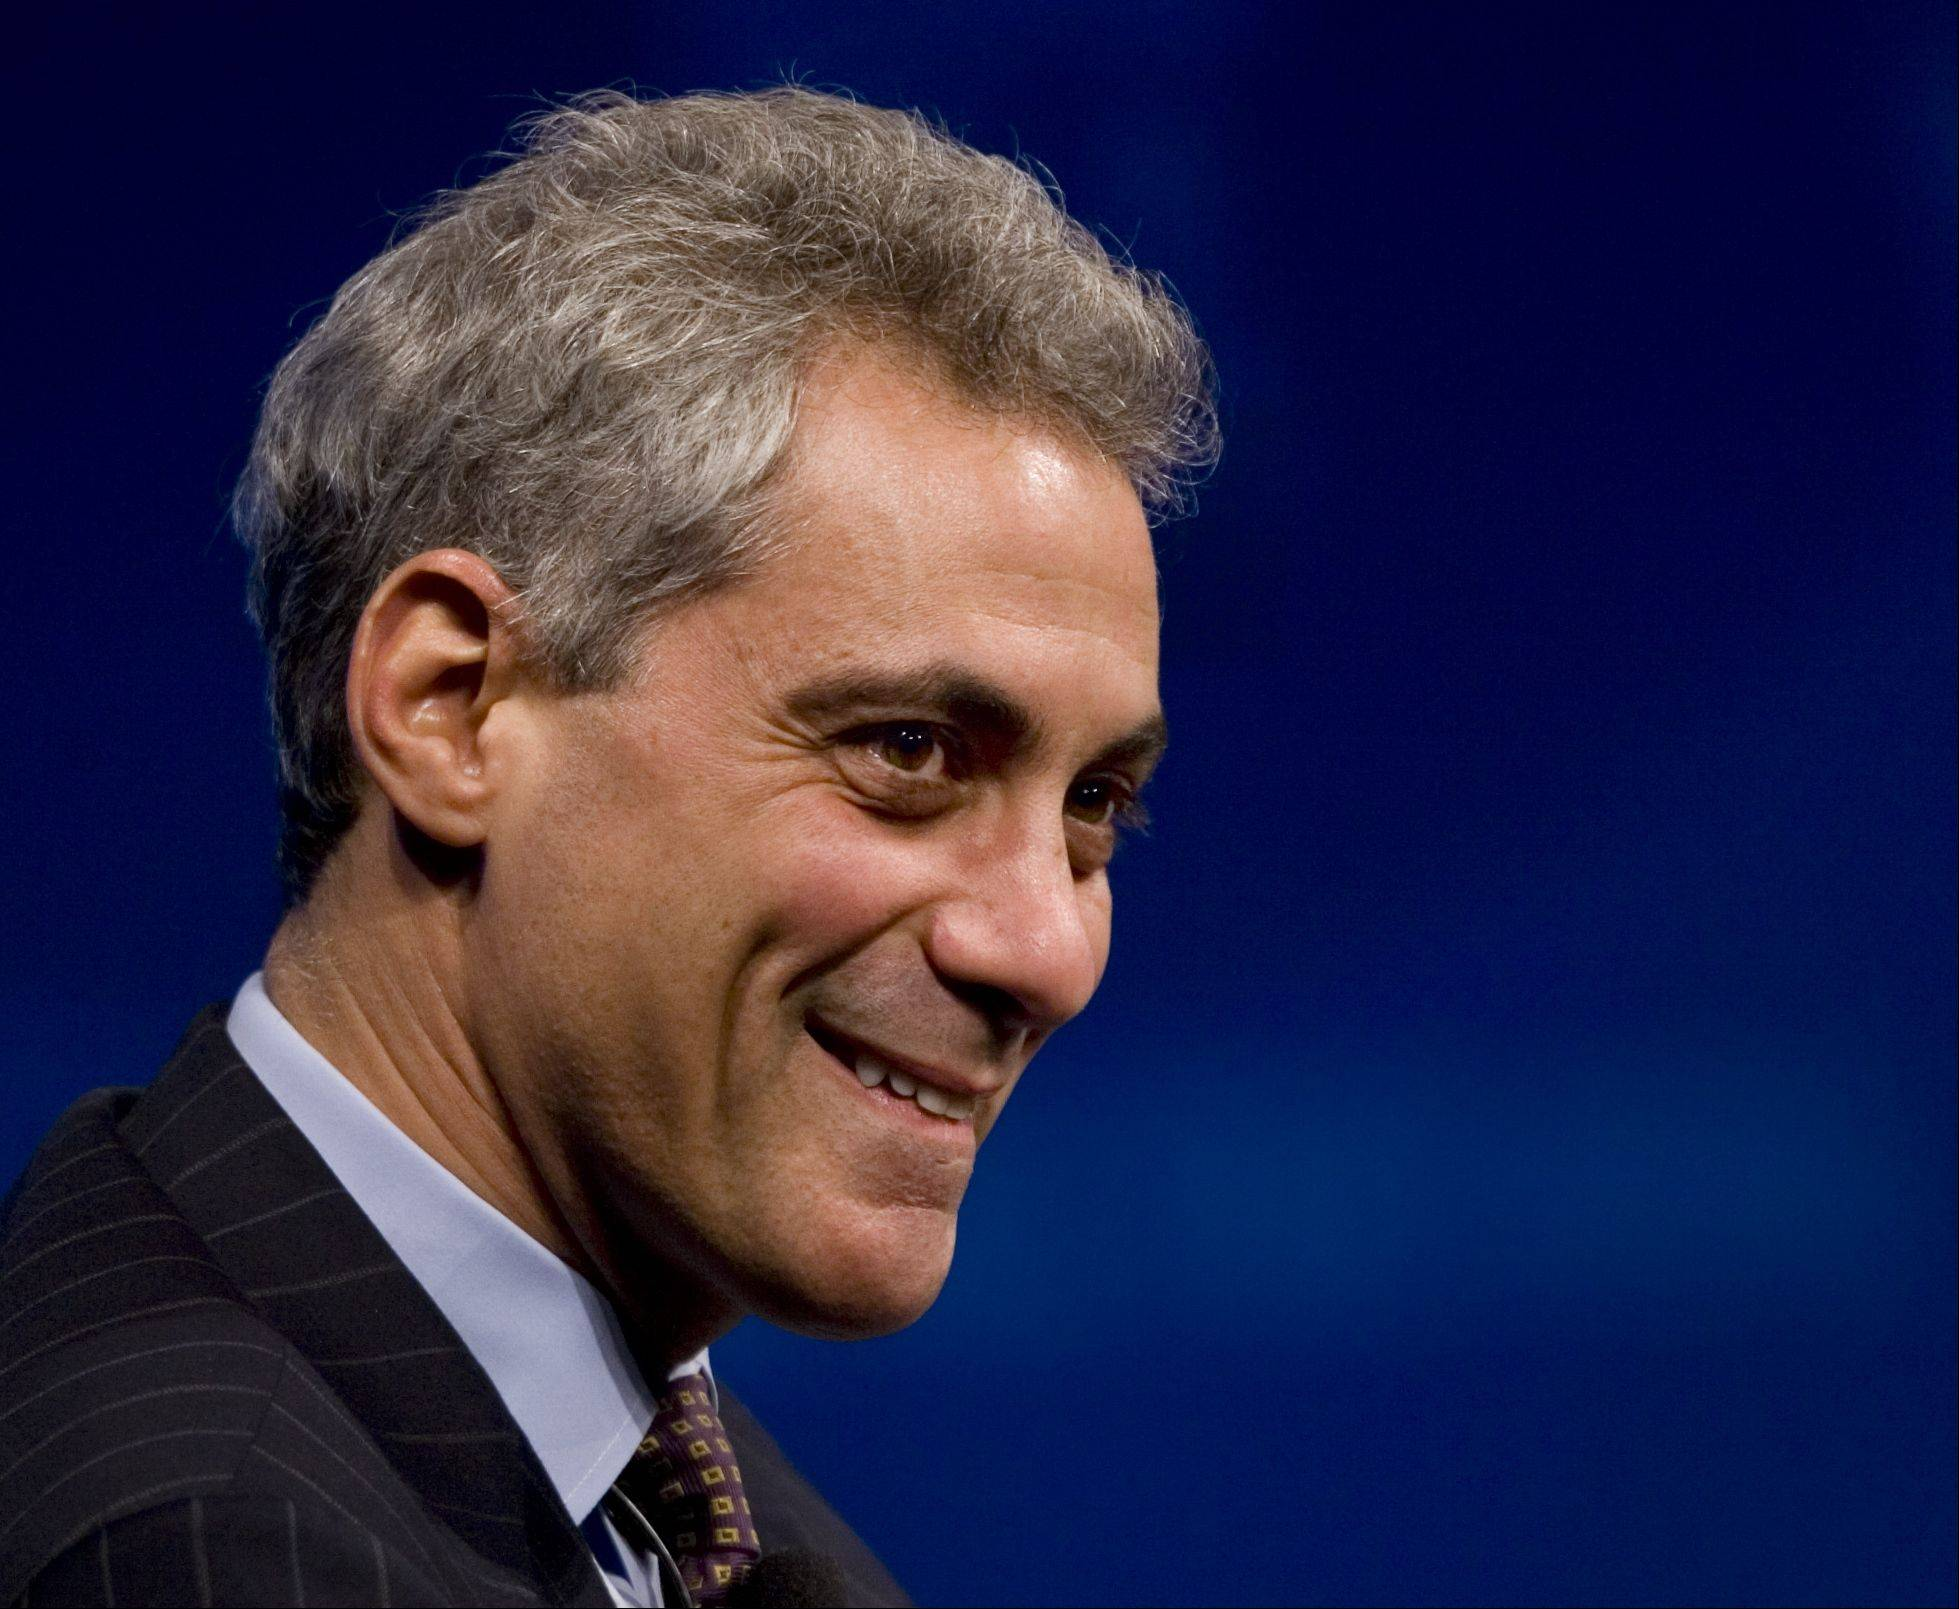 Chicago Mayor Rahm Emanuel plans to seek re-election in 2015 and says he's not interested in higher office, telling a newspaper he intends to fulfill his obligations should voters give him a second four-year term.